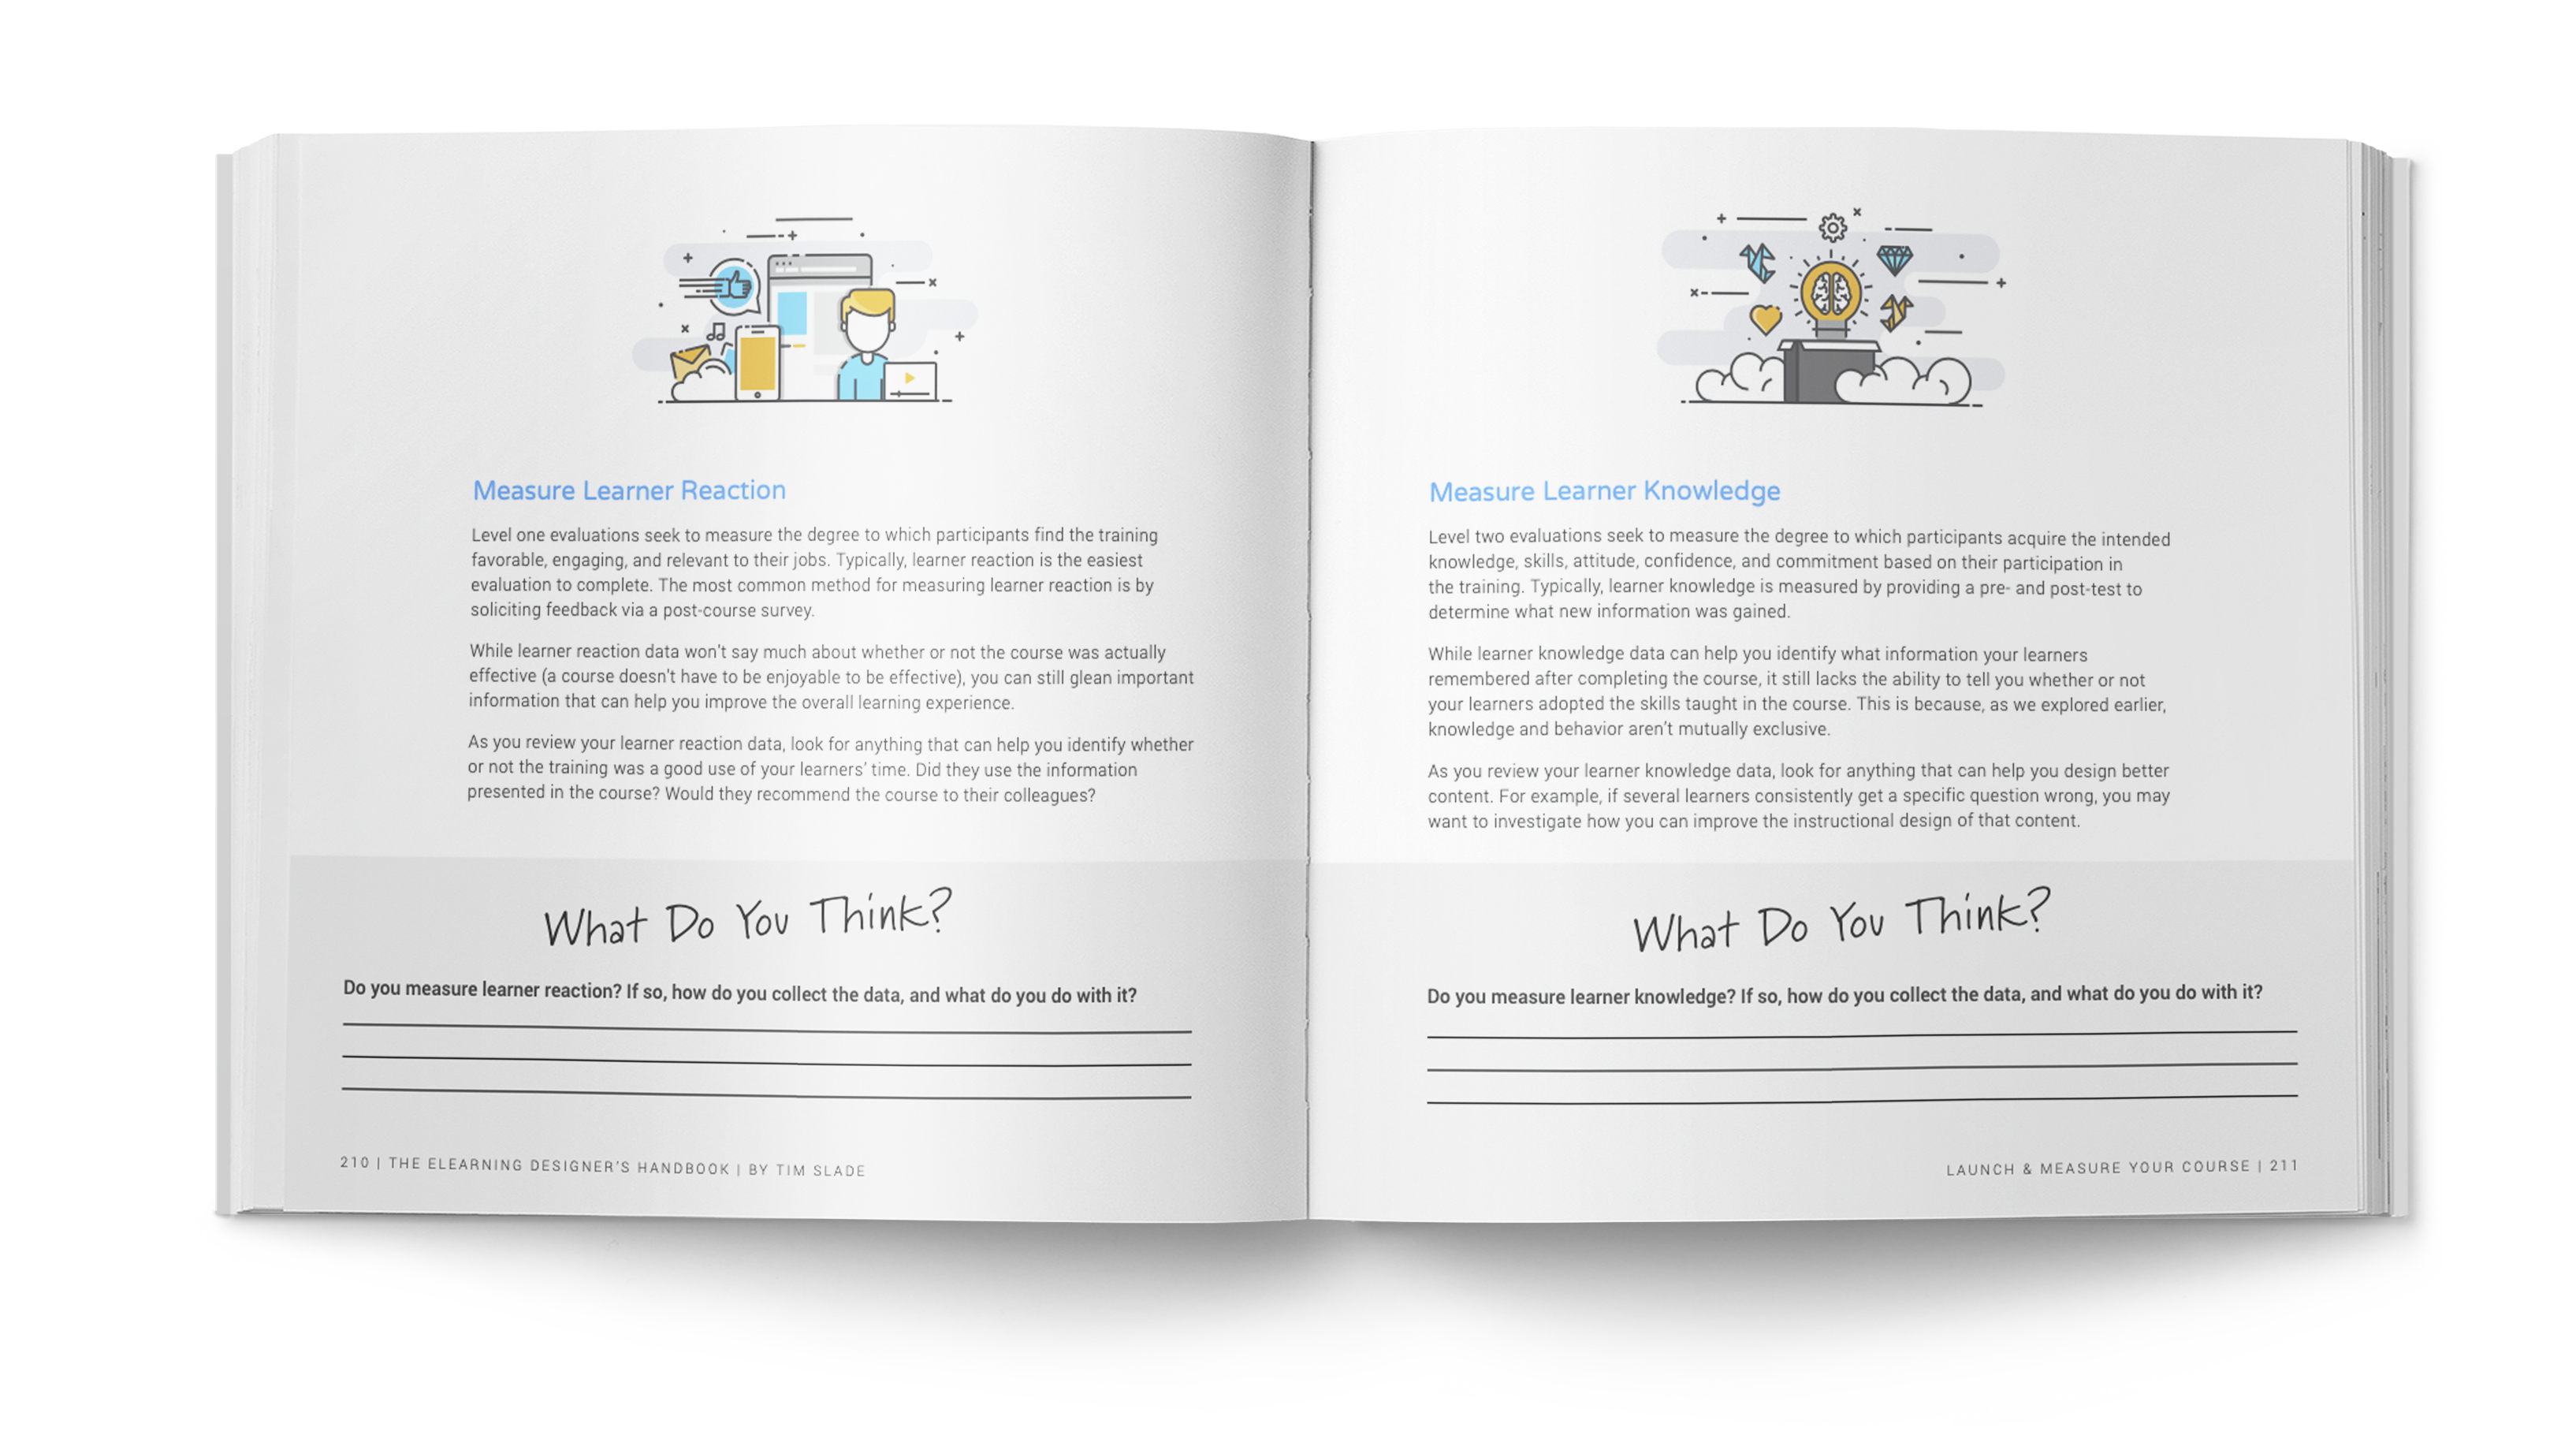 The eLearning Designer's Handbook by Tim Slade   Launch & Measure Your Course   Freelance eLearning Designer   The eLearning Designer's Academy